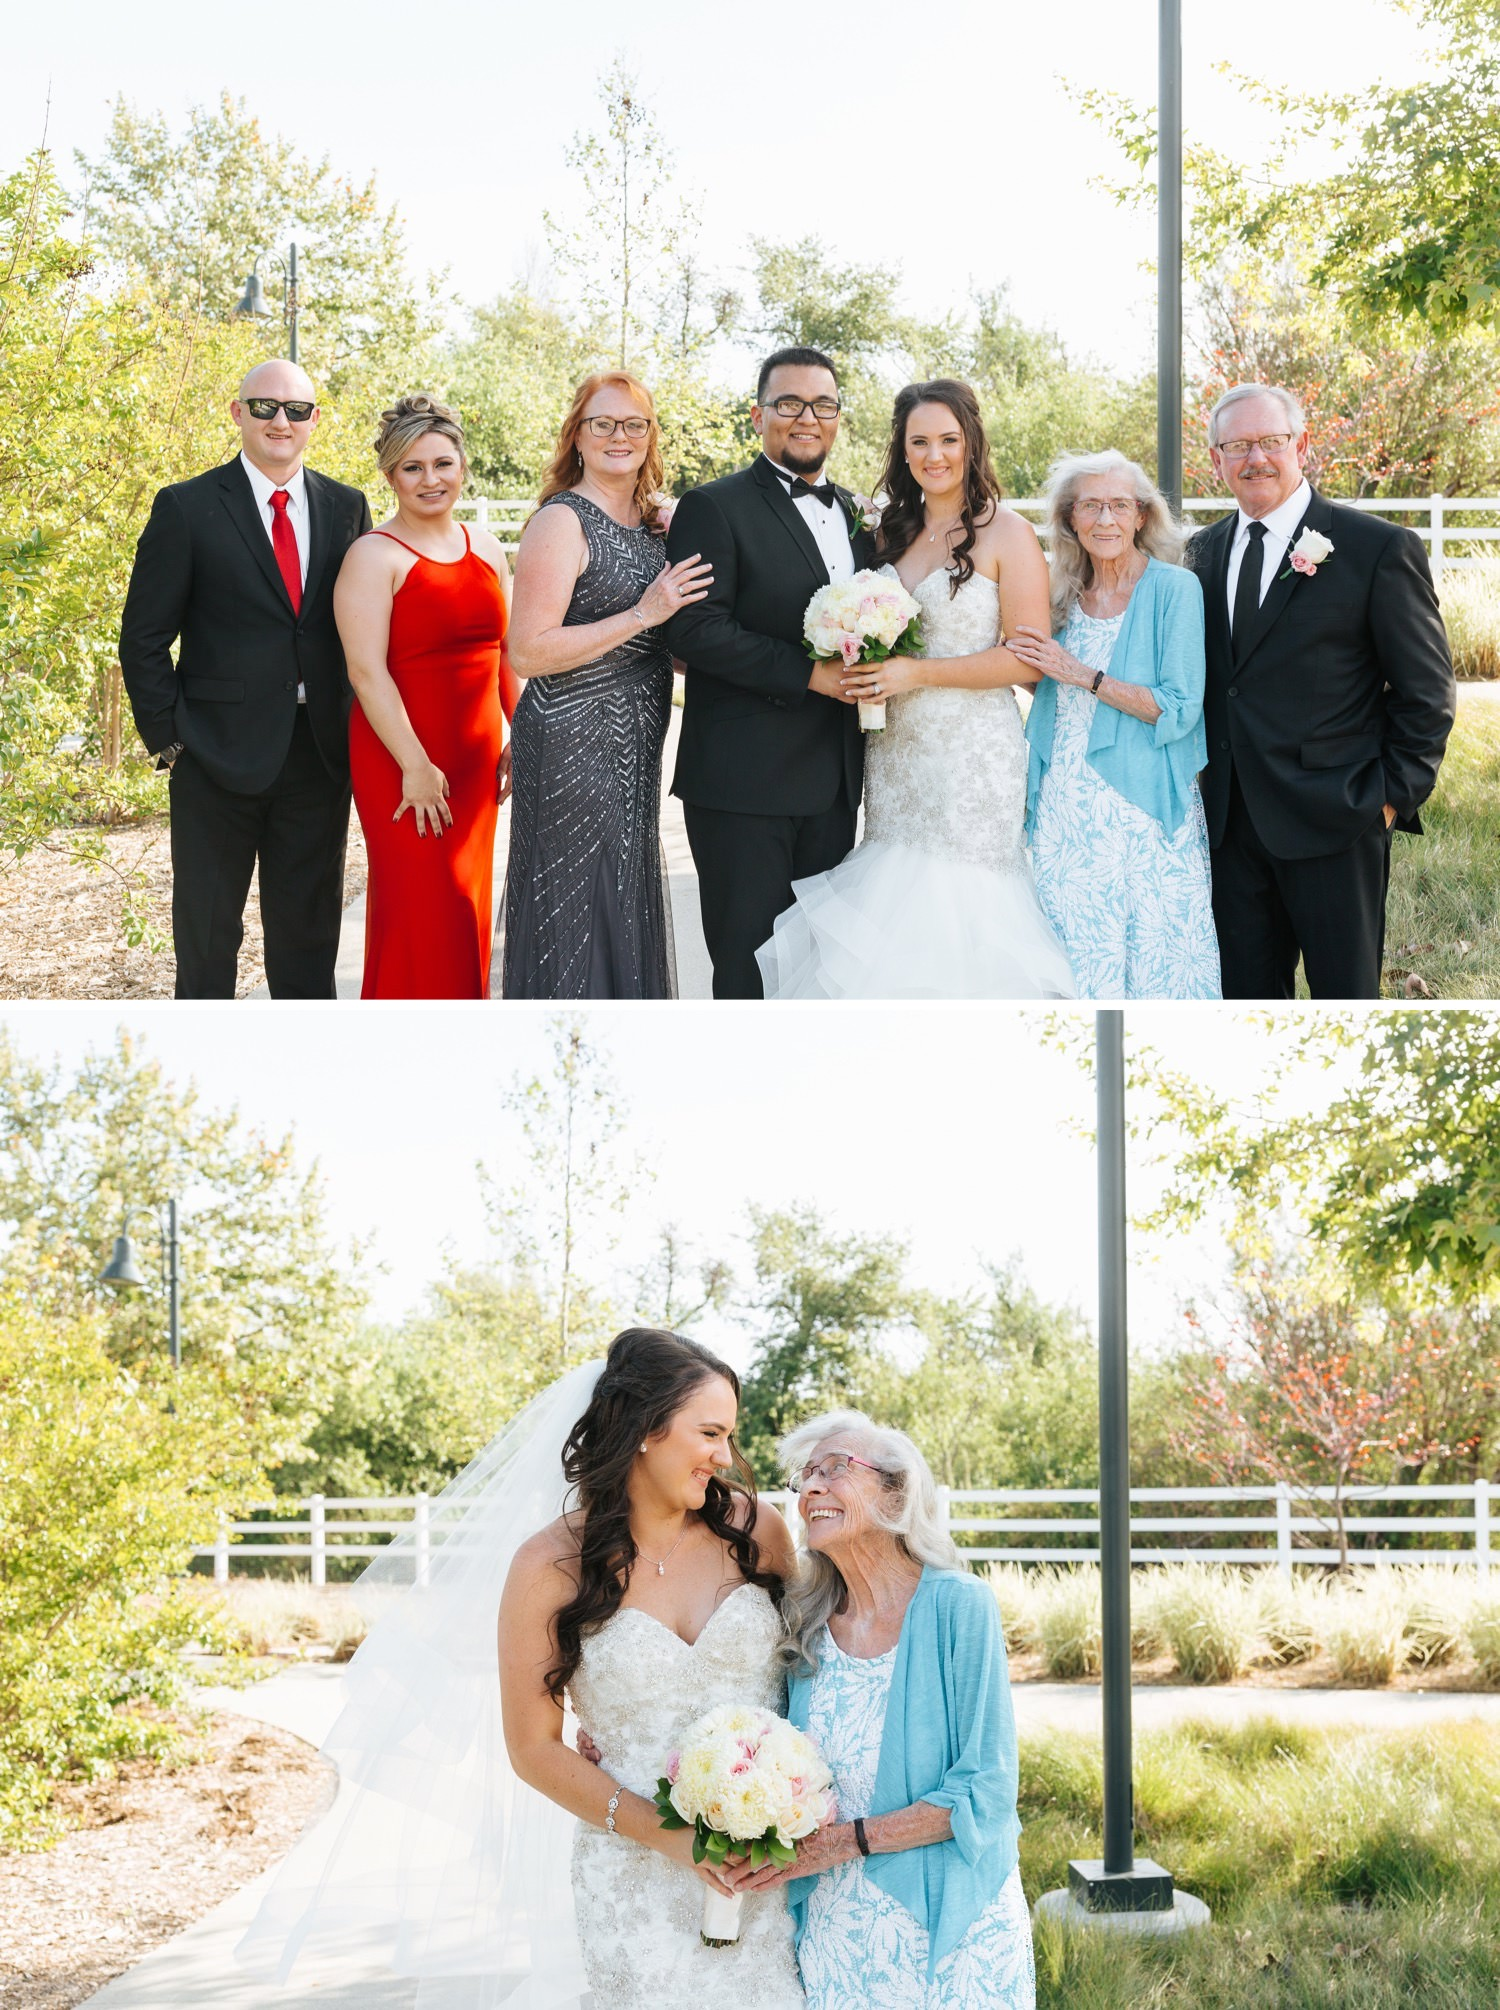 Chino Hills Wedding Photographer - Family Photos - https://brittneyhannonphotography.com